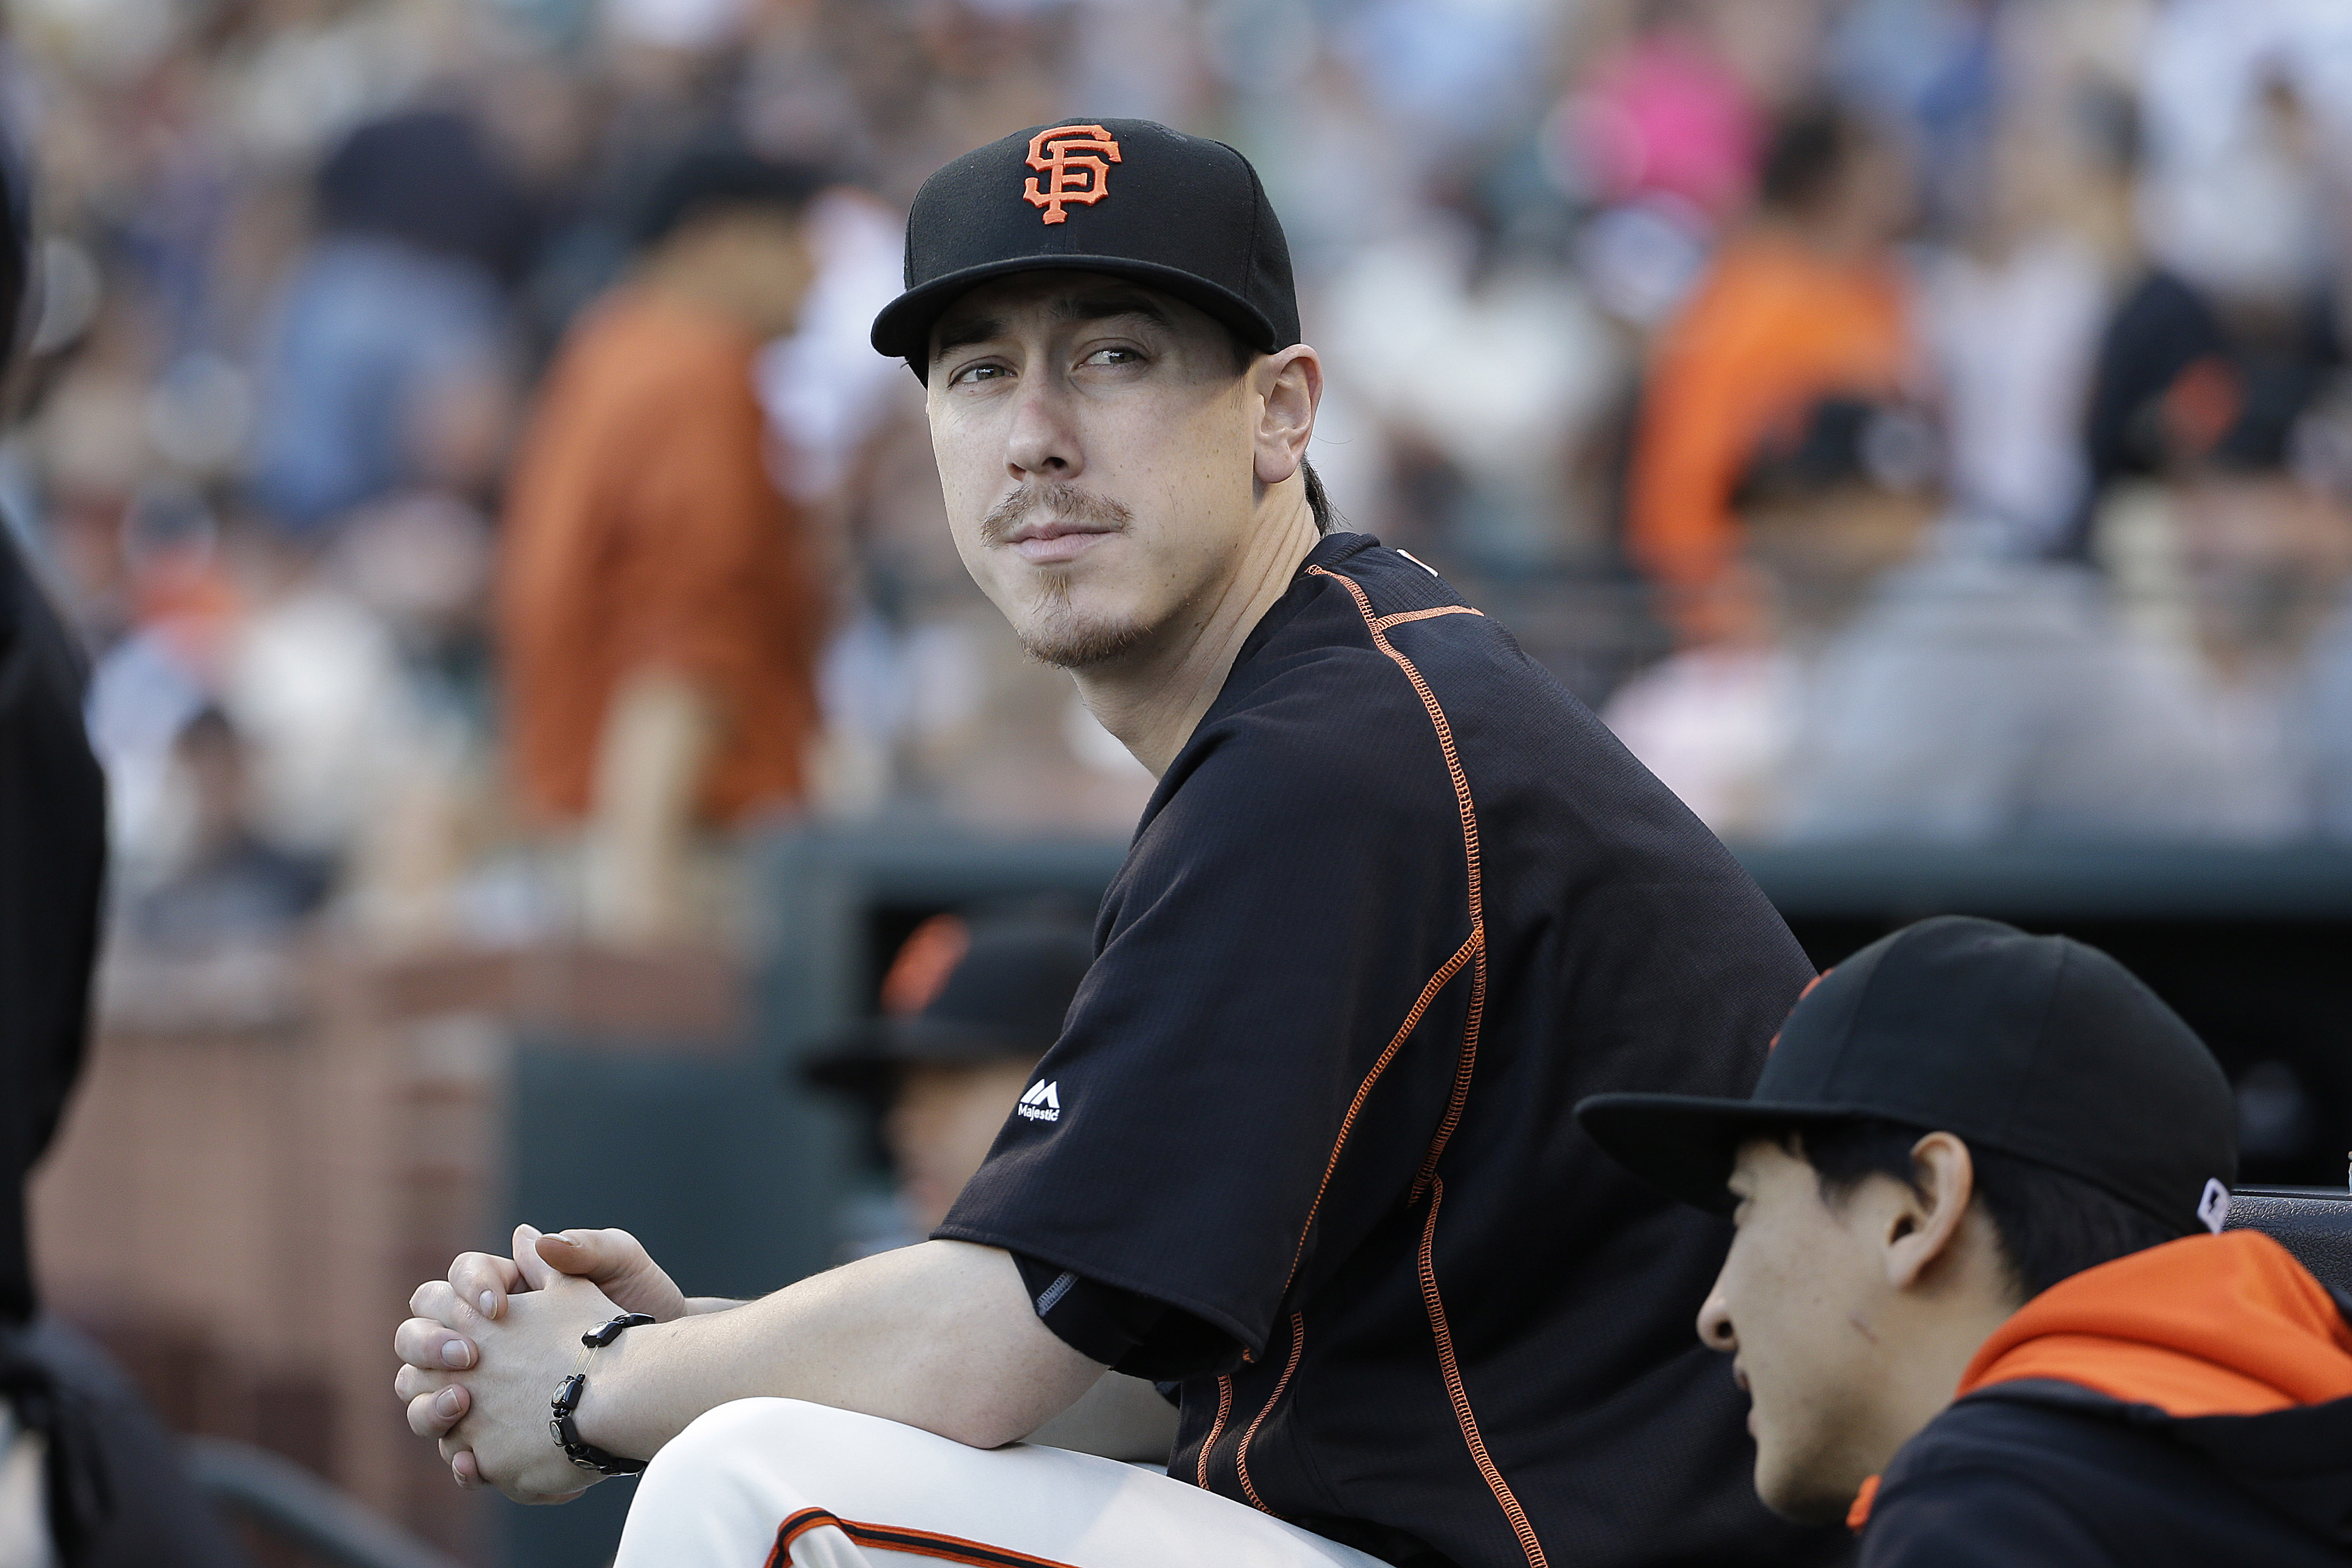 FILE - This July 28, 2015 file photo shows San Francisco Giants pitcher Tim Lincecum looking on during a baseball game against the Milwaukee Brewers in San Francisco. The two-time NL Cy Young Award winner will pitch for major league clubs in a showcase ev